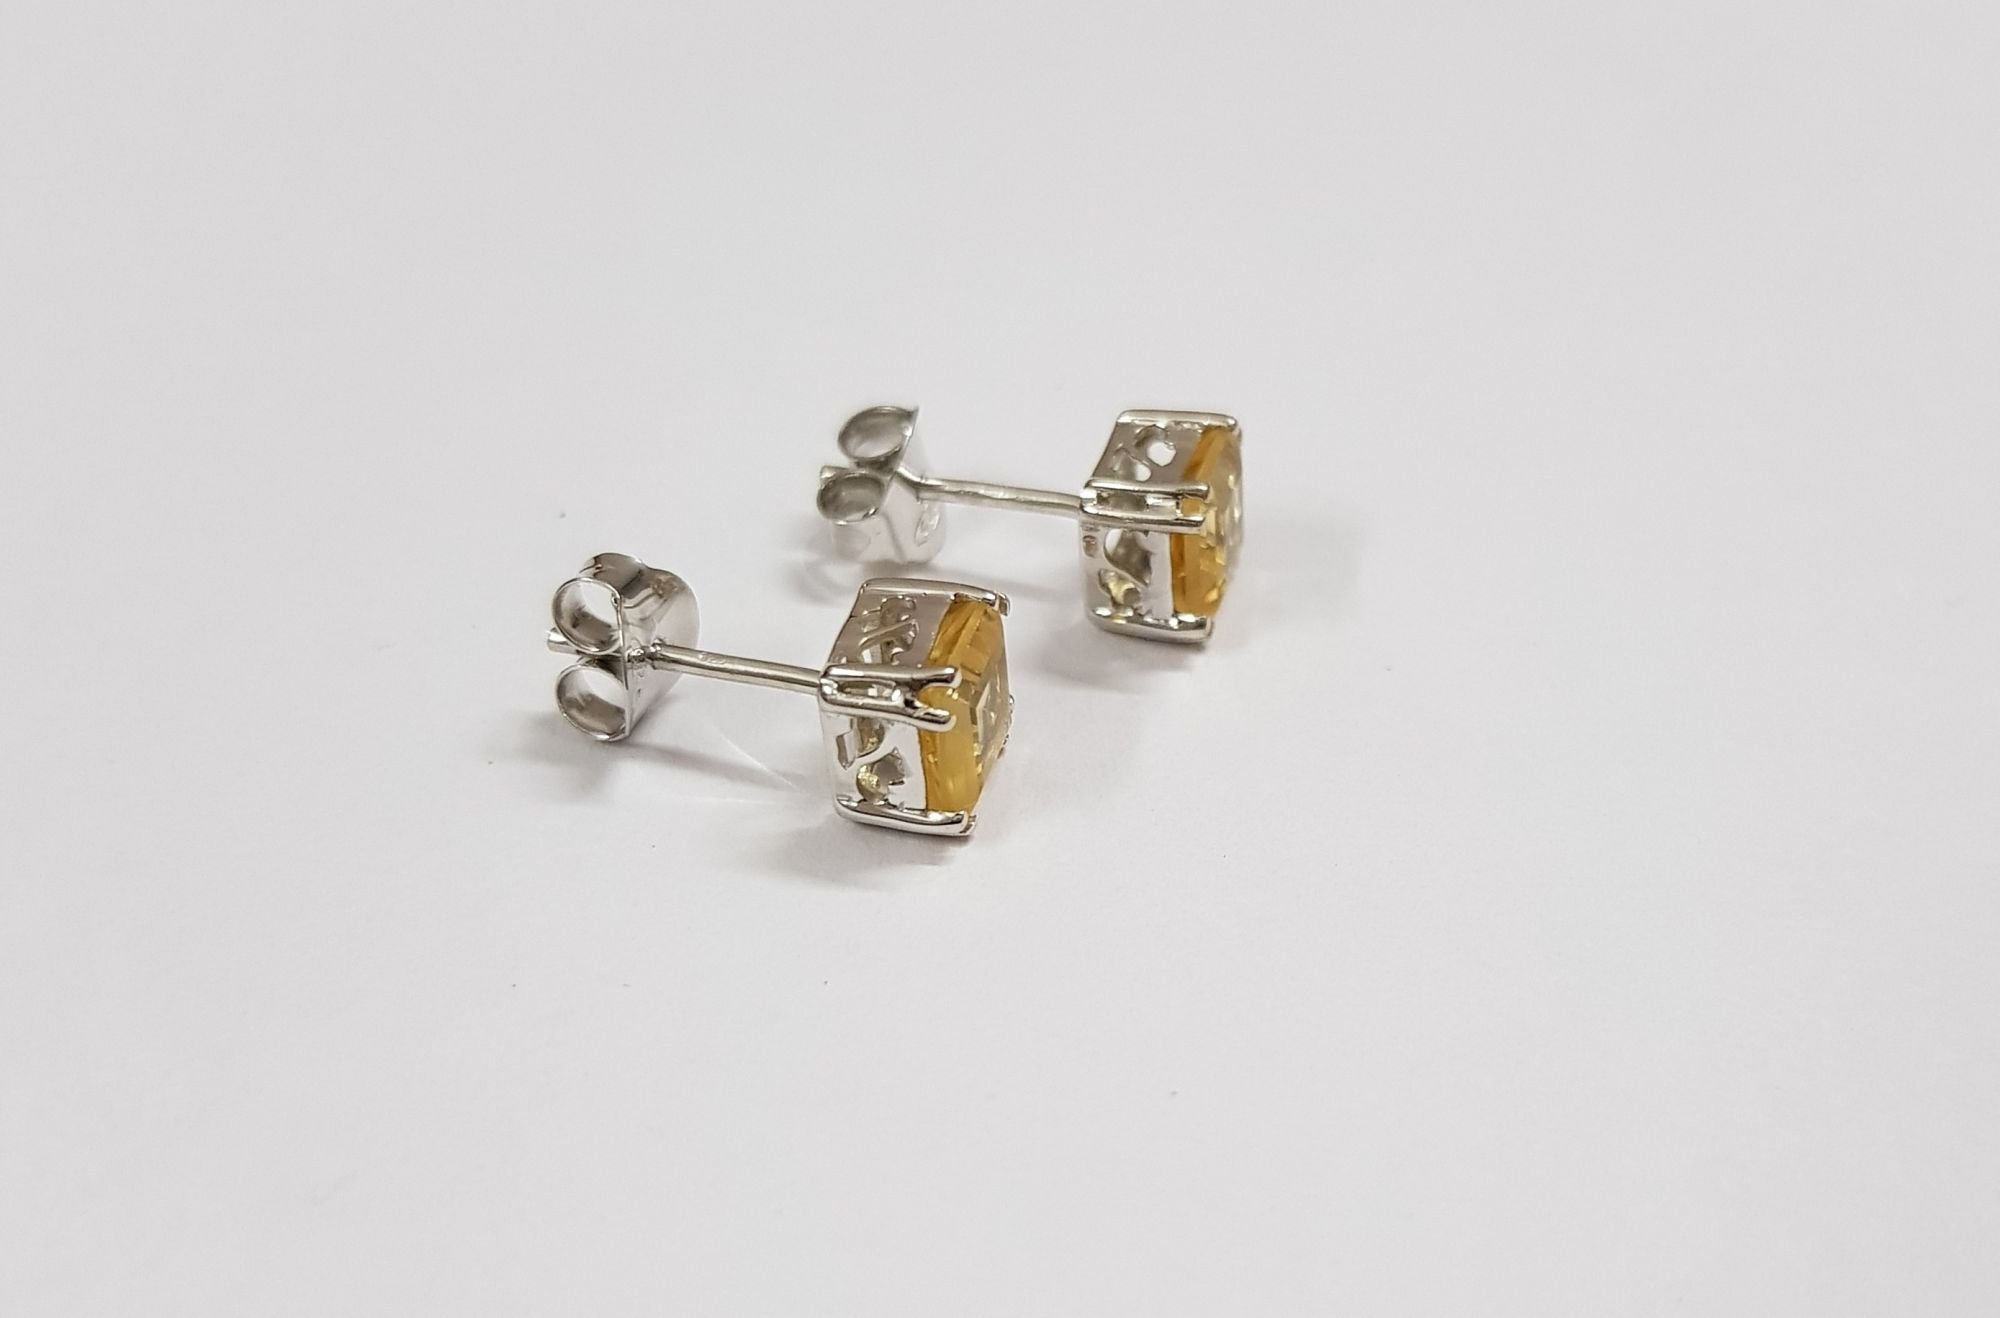 Ear stud with 6mm square